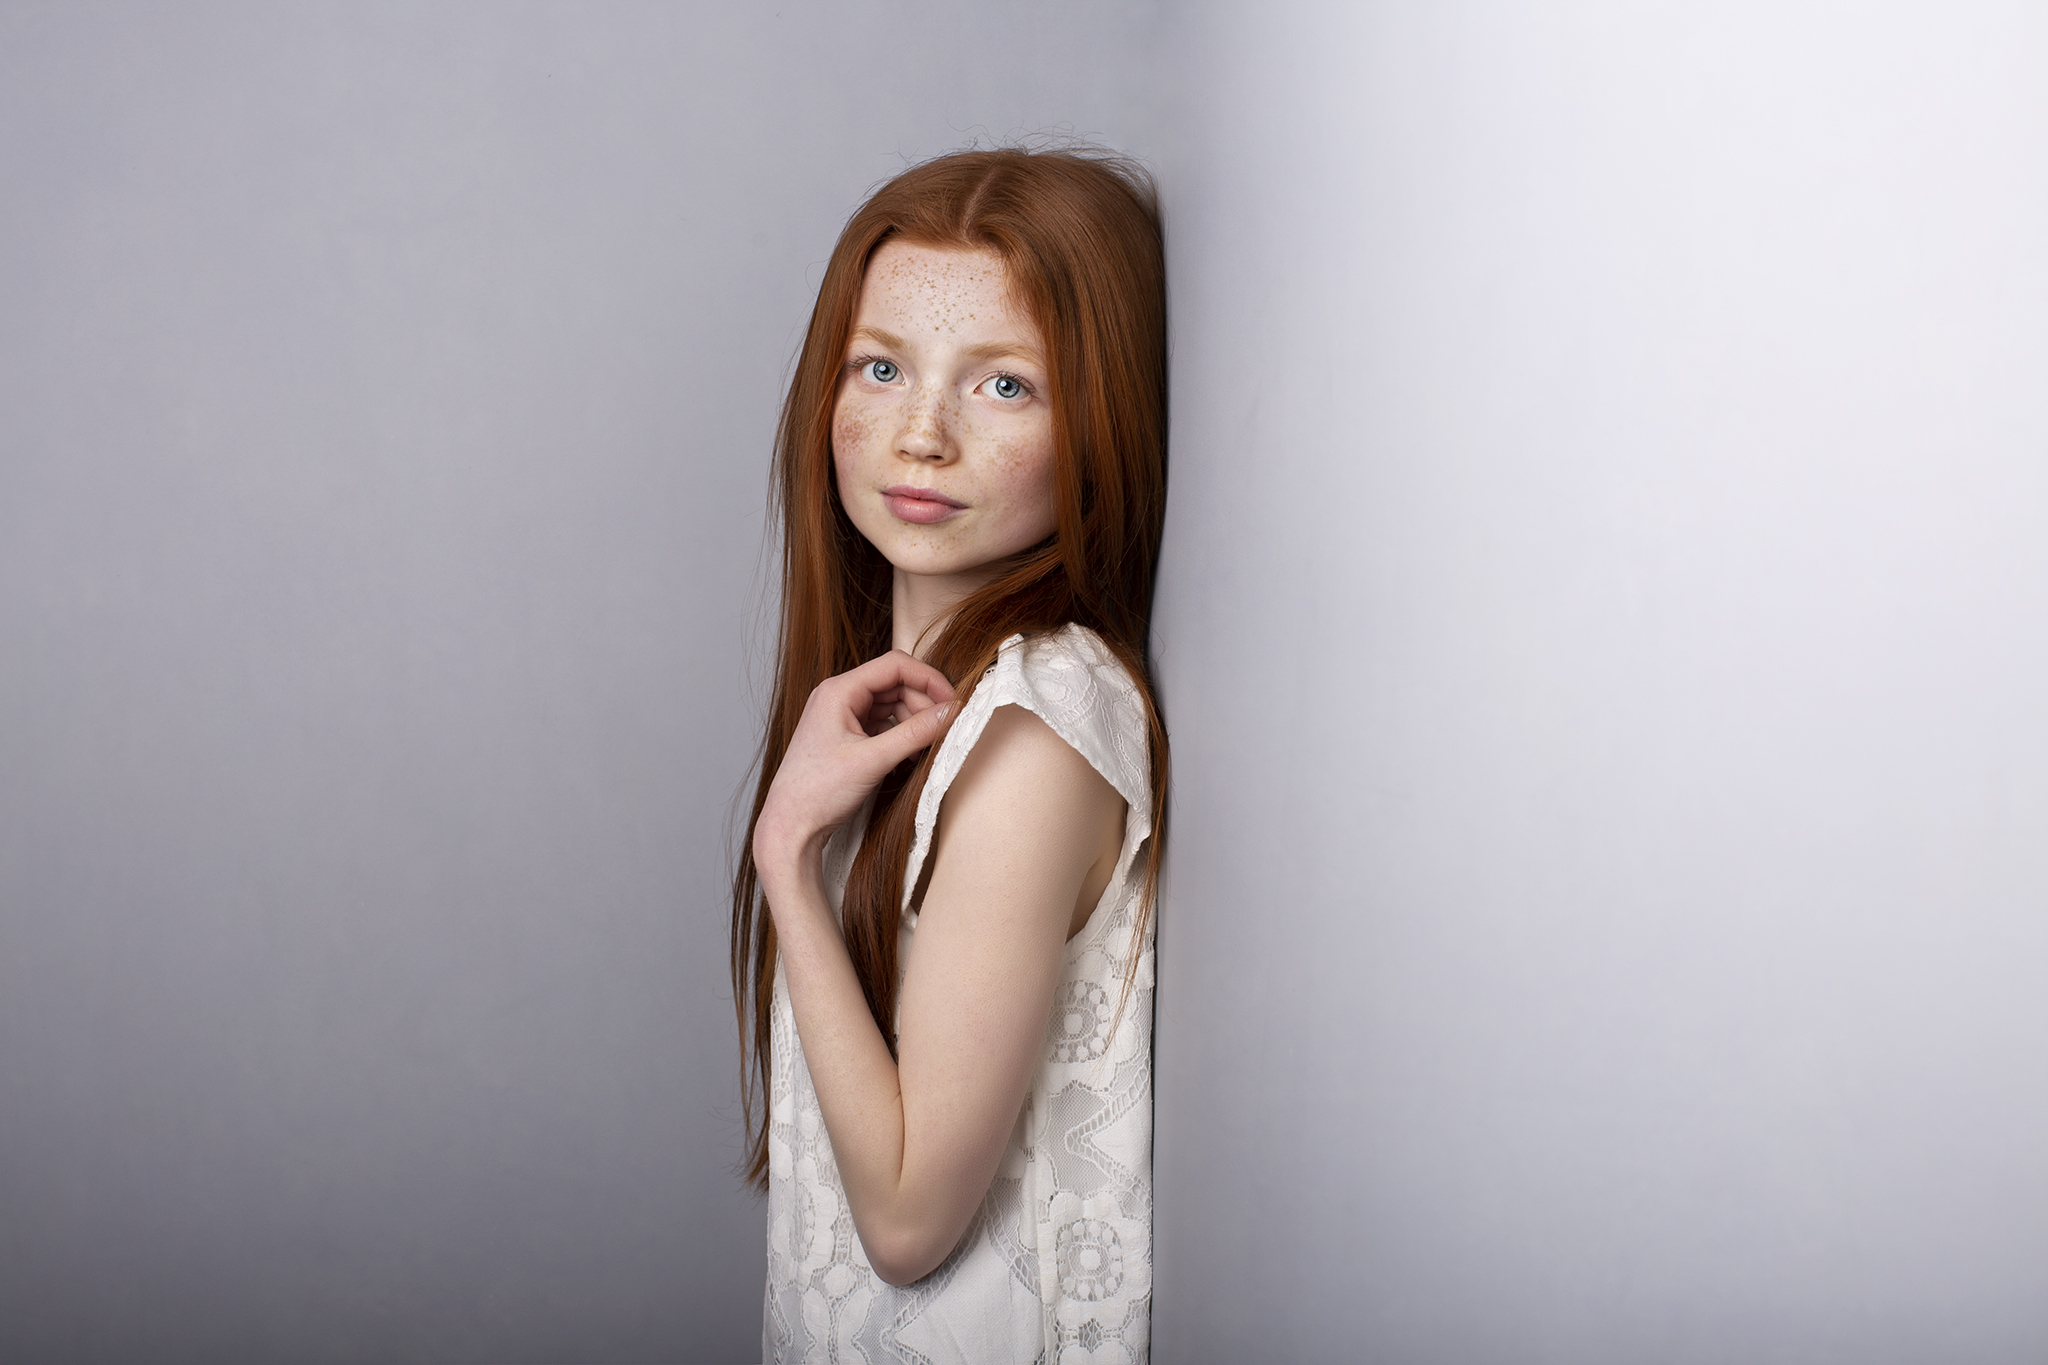 Elizabethg_fineart_portrait_photography_esme_kidslondon_model_agency_1.jpg